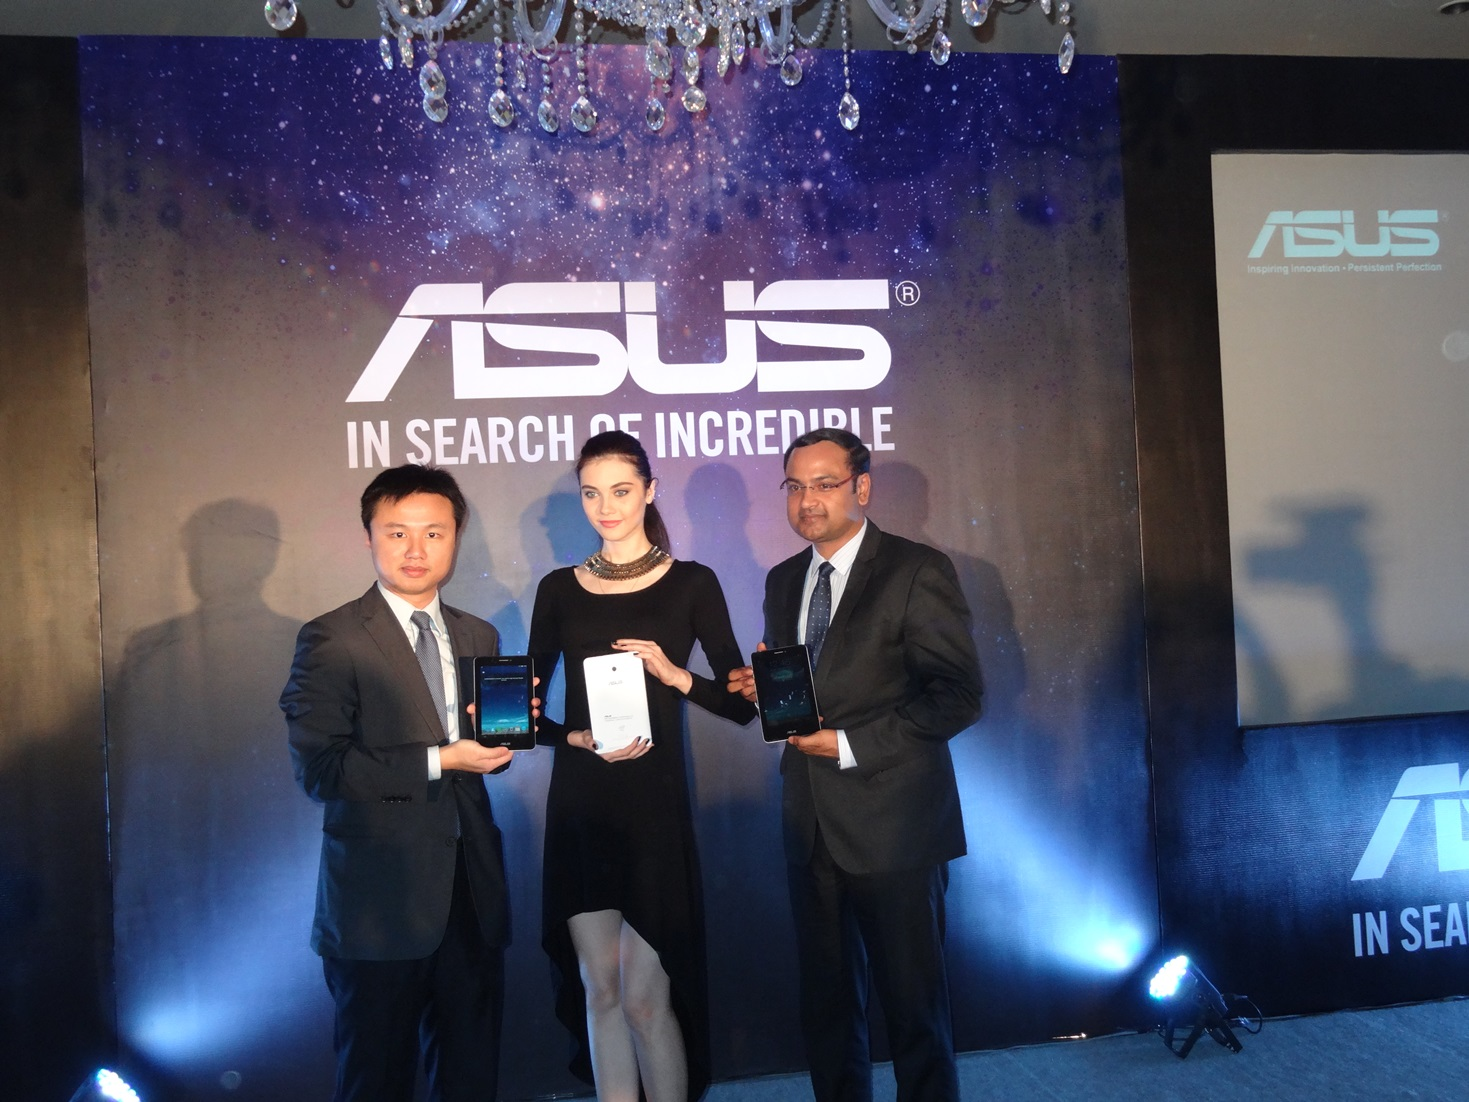 ASUS announces all new Fonepad 7 Dual Sim Tablet at affordable price point of Rs. 12,999/-